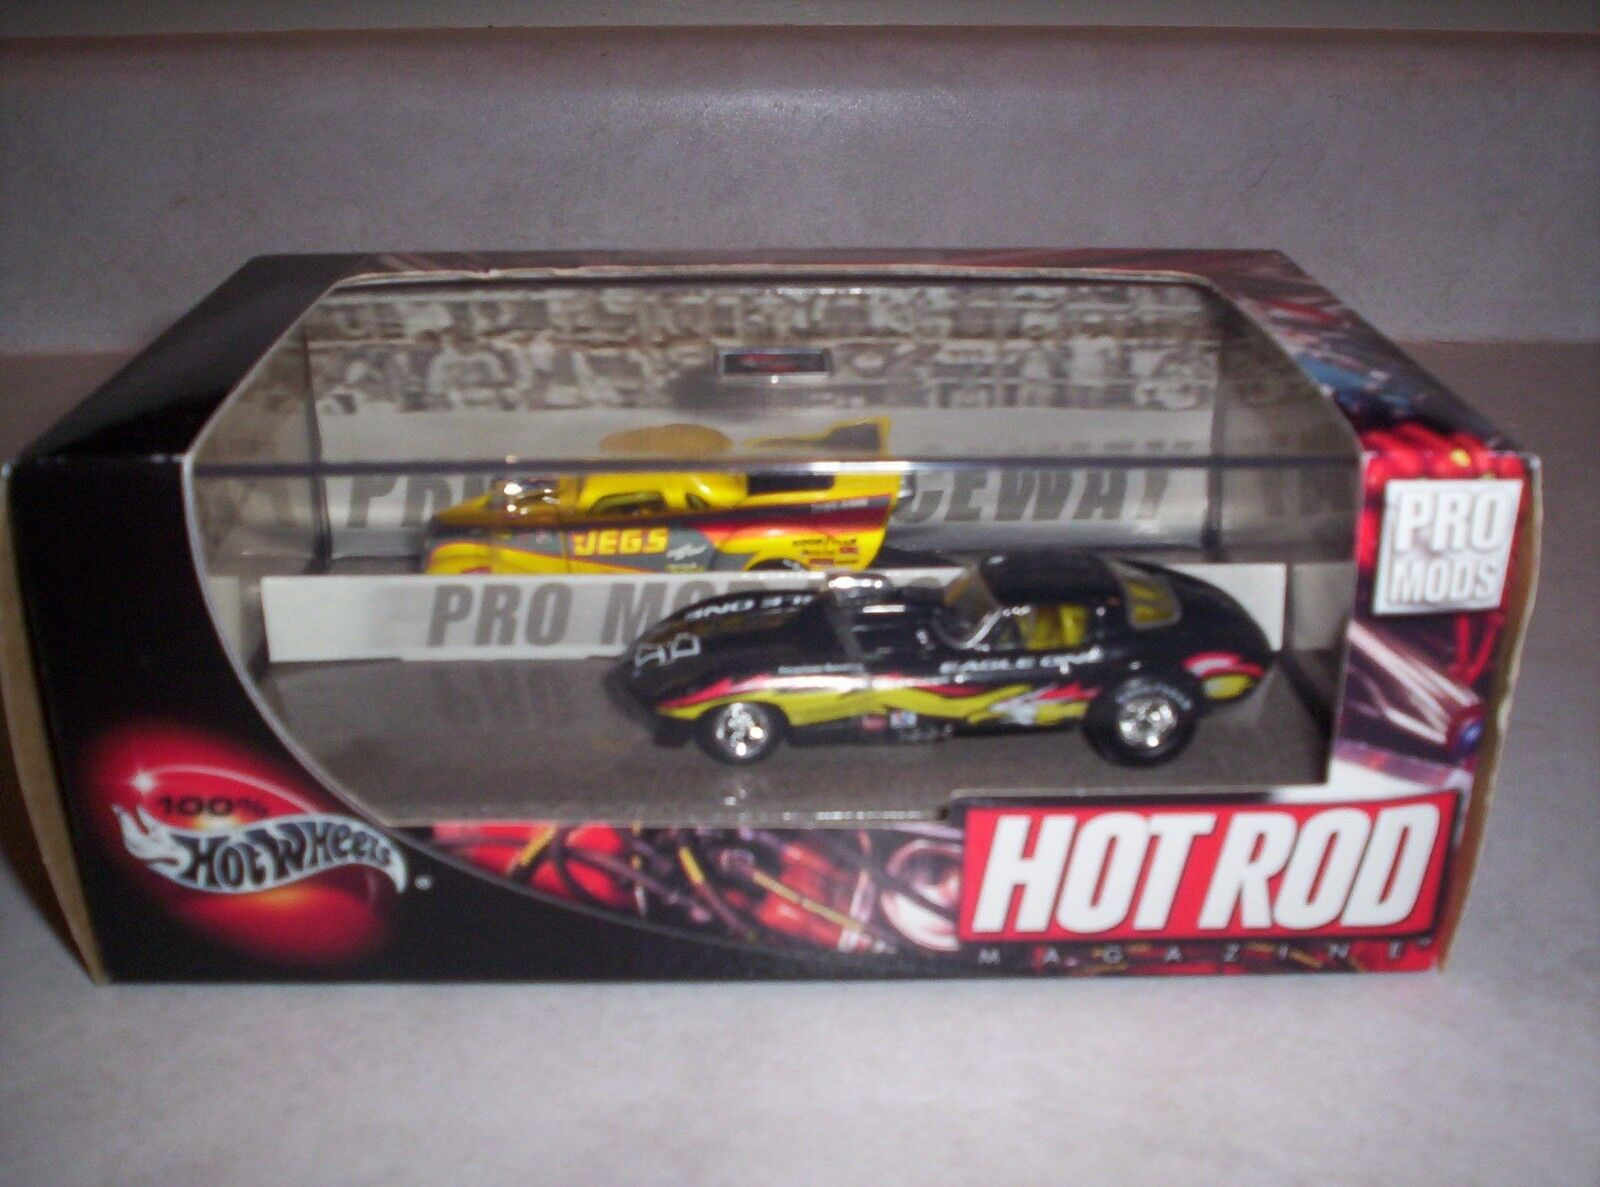 Hot Wheels 100% 2 Car Set - Hot Rod Pro Mods